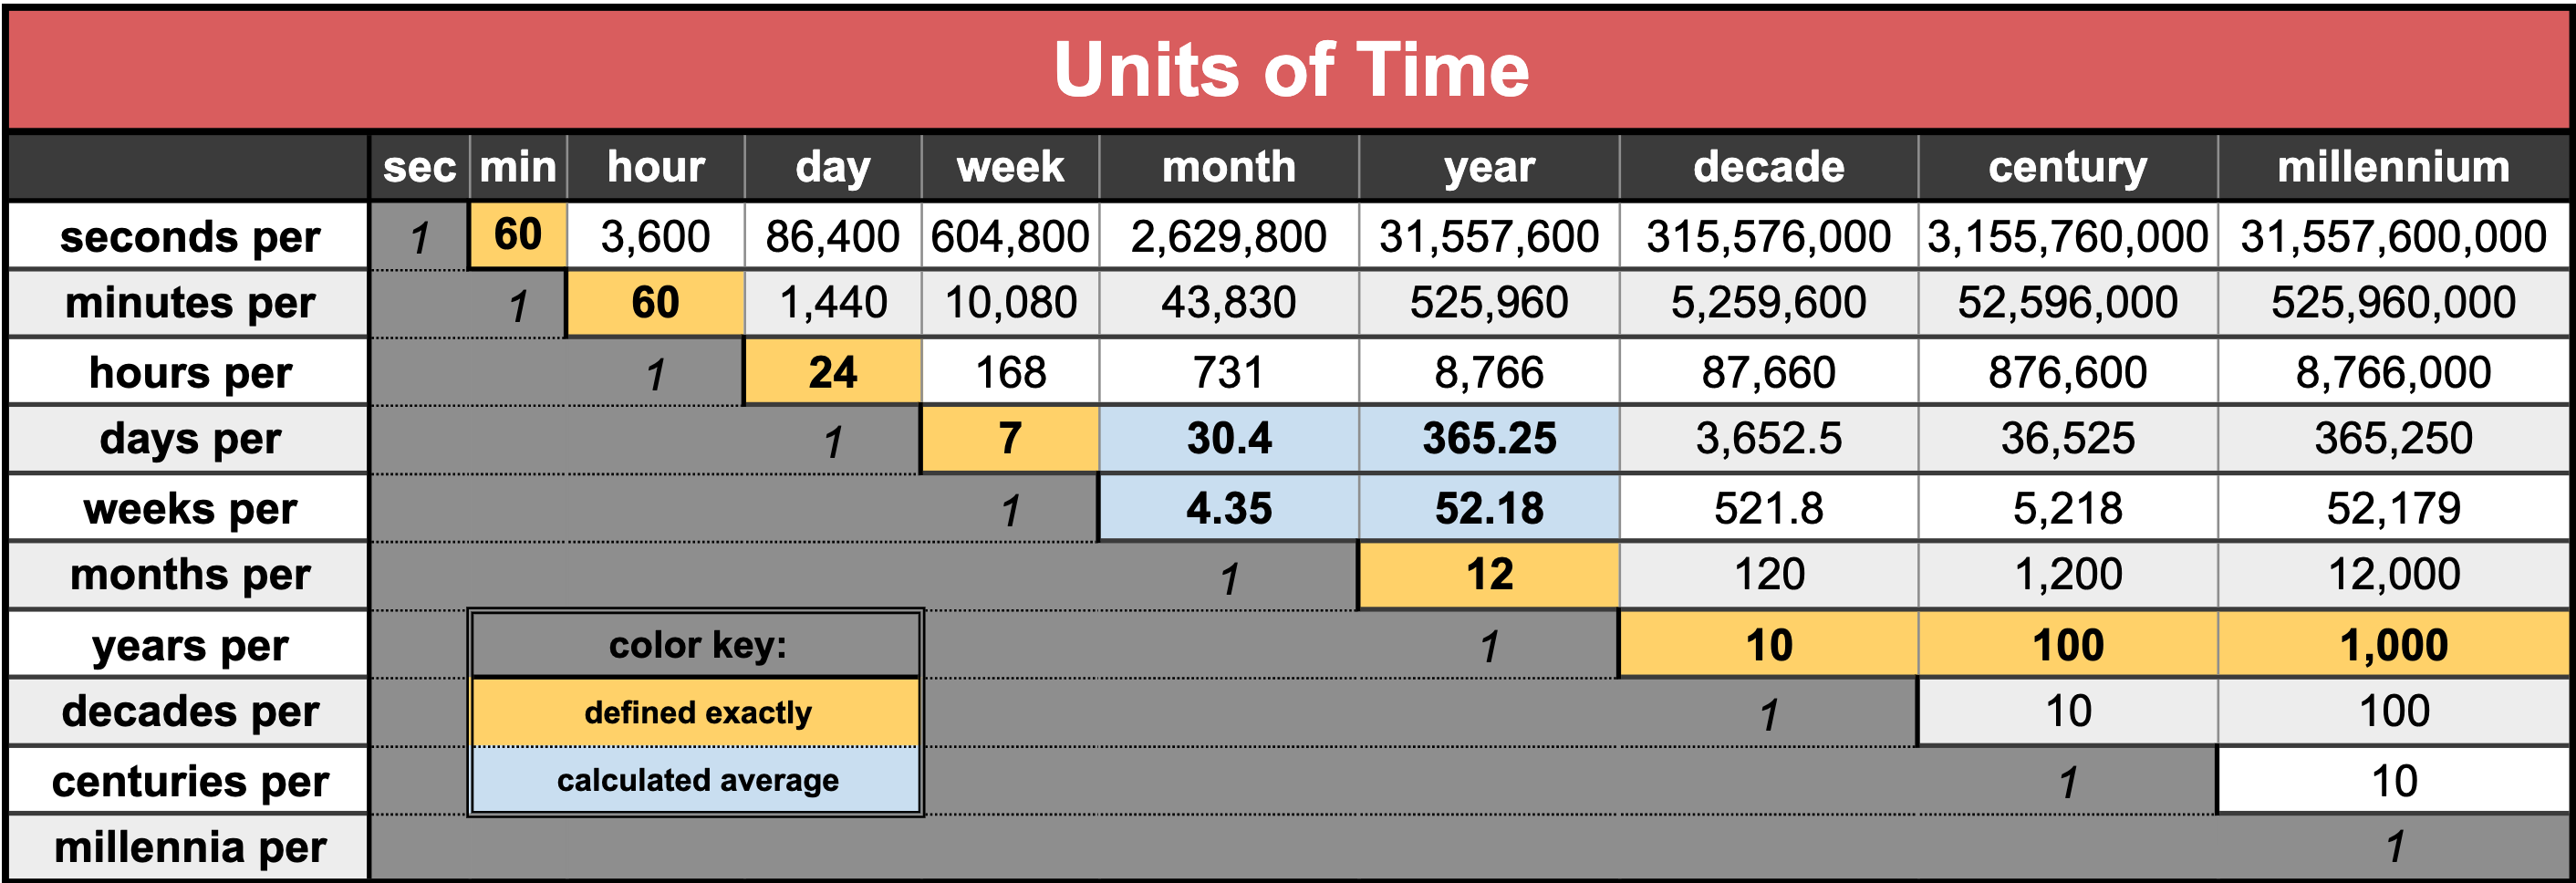 Unit Of Time Wikipedia Chronemics is the study of the role of time in communication. unit of time wikipedia